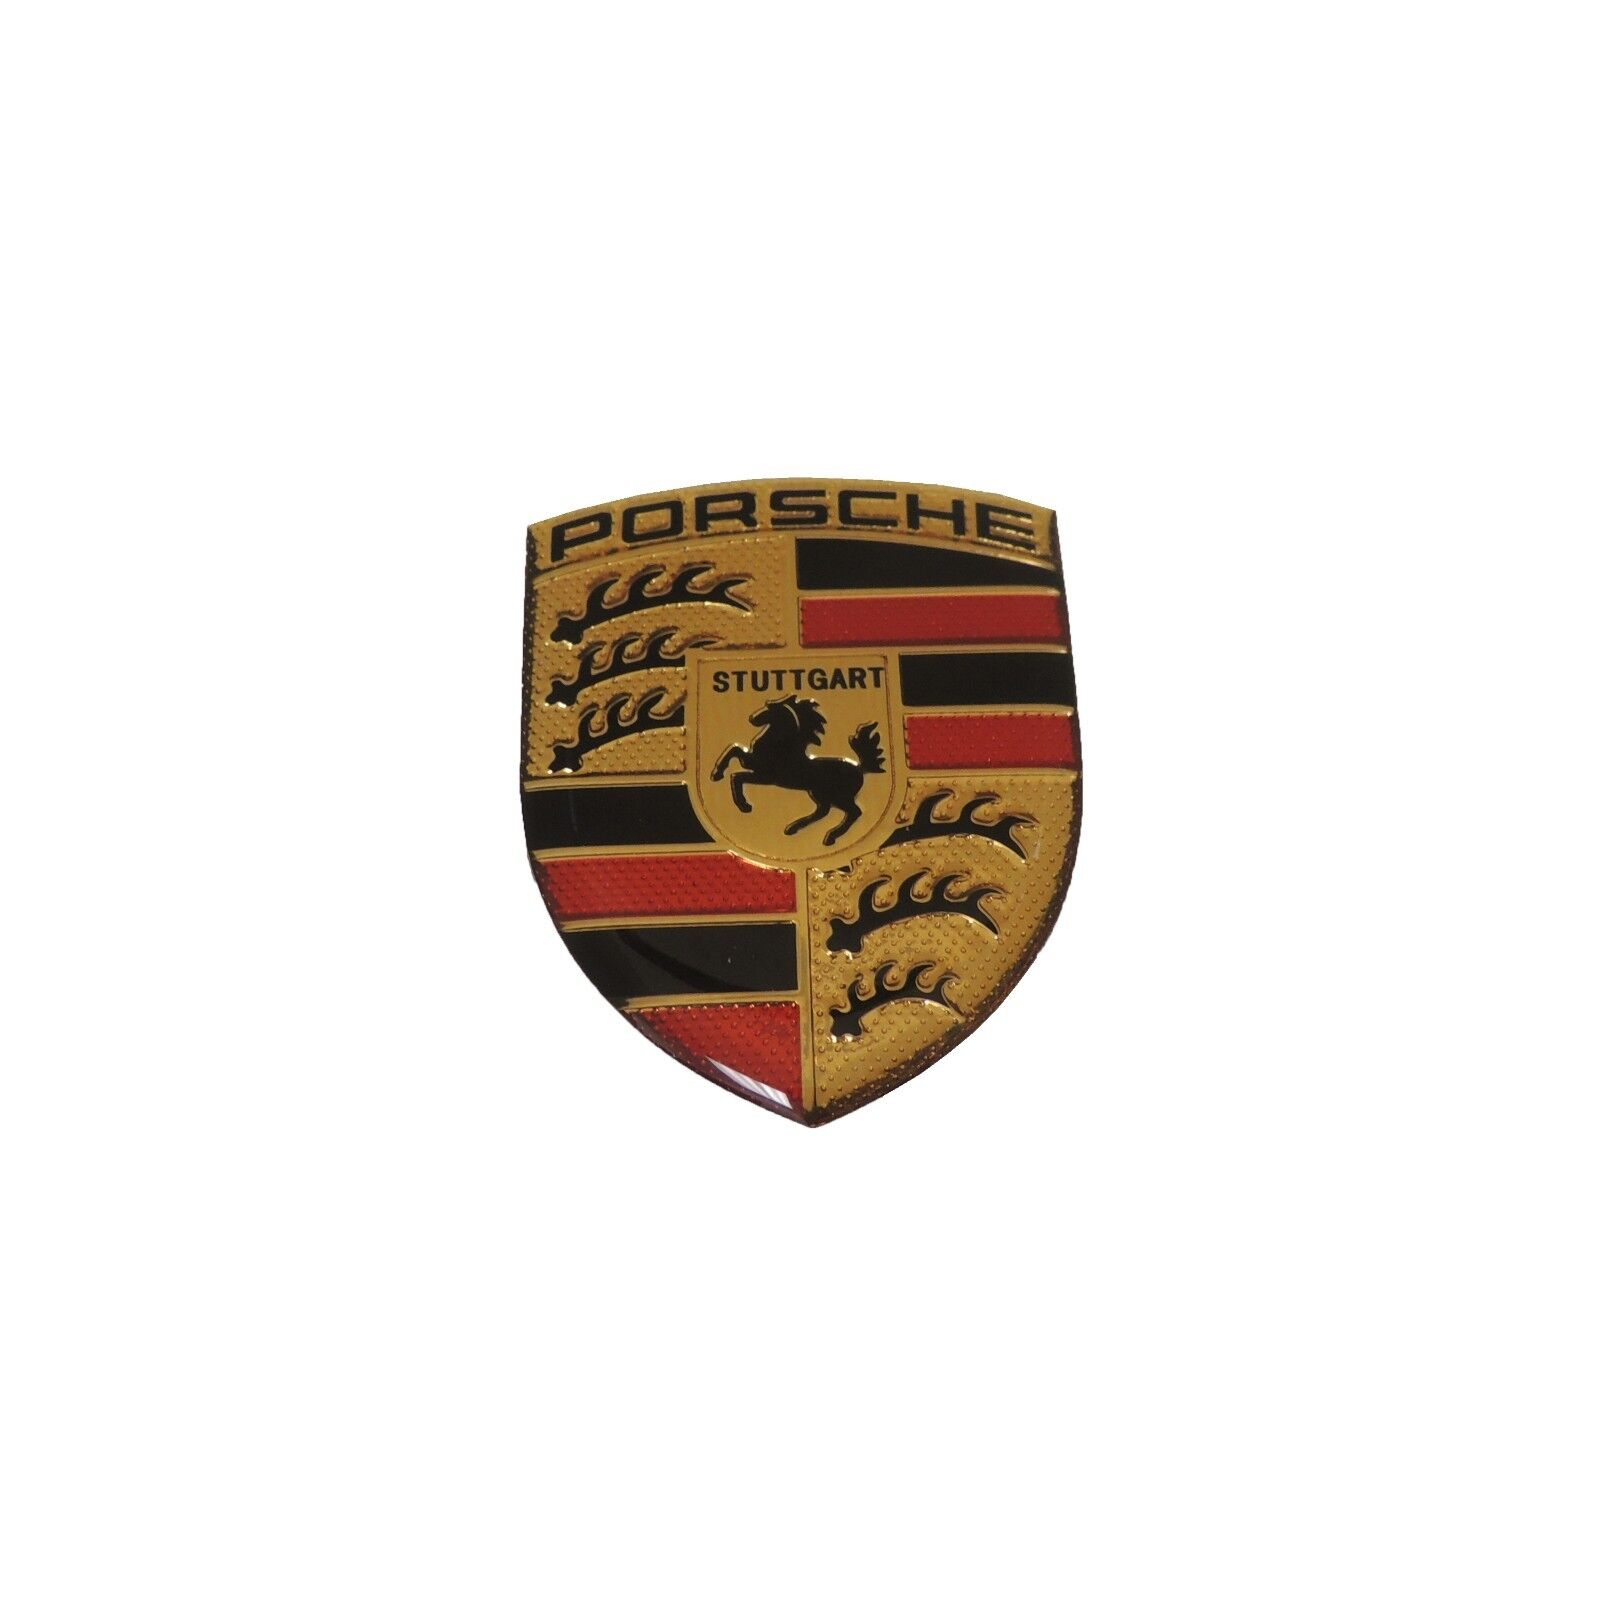 Details about porsche logo sticker for 1950 2019 porsche 356 911 912 930 964 993 hood